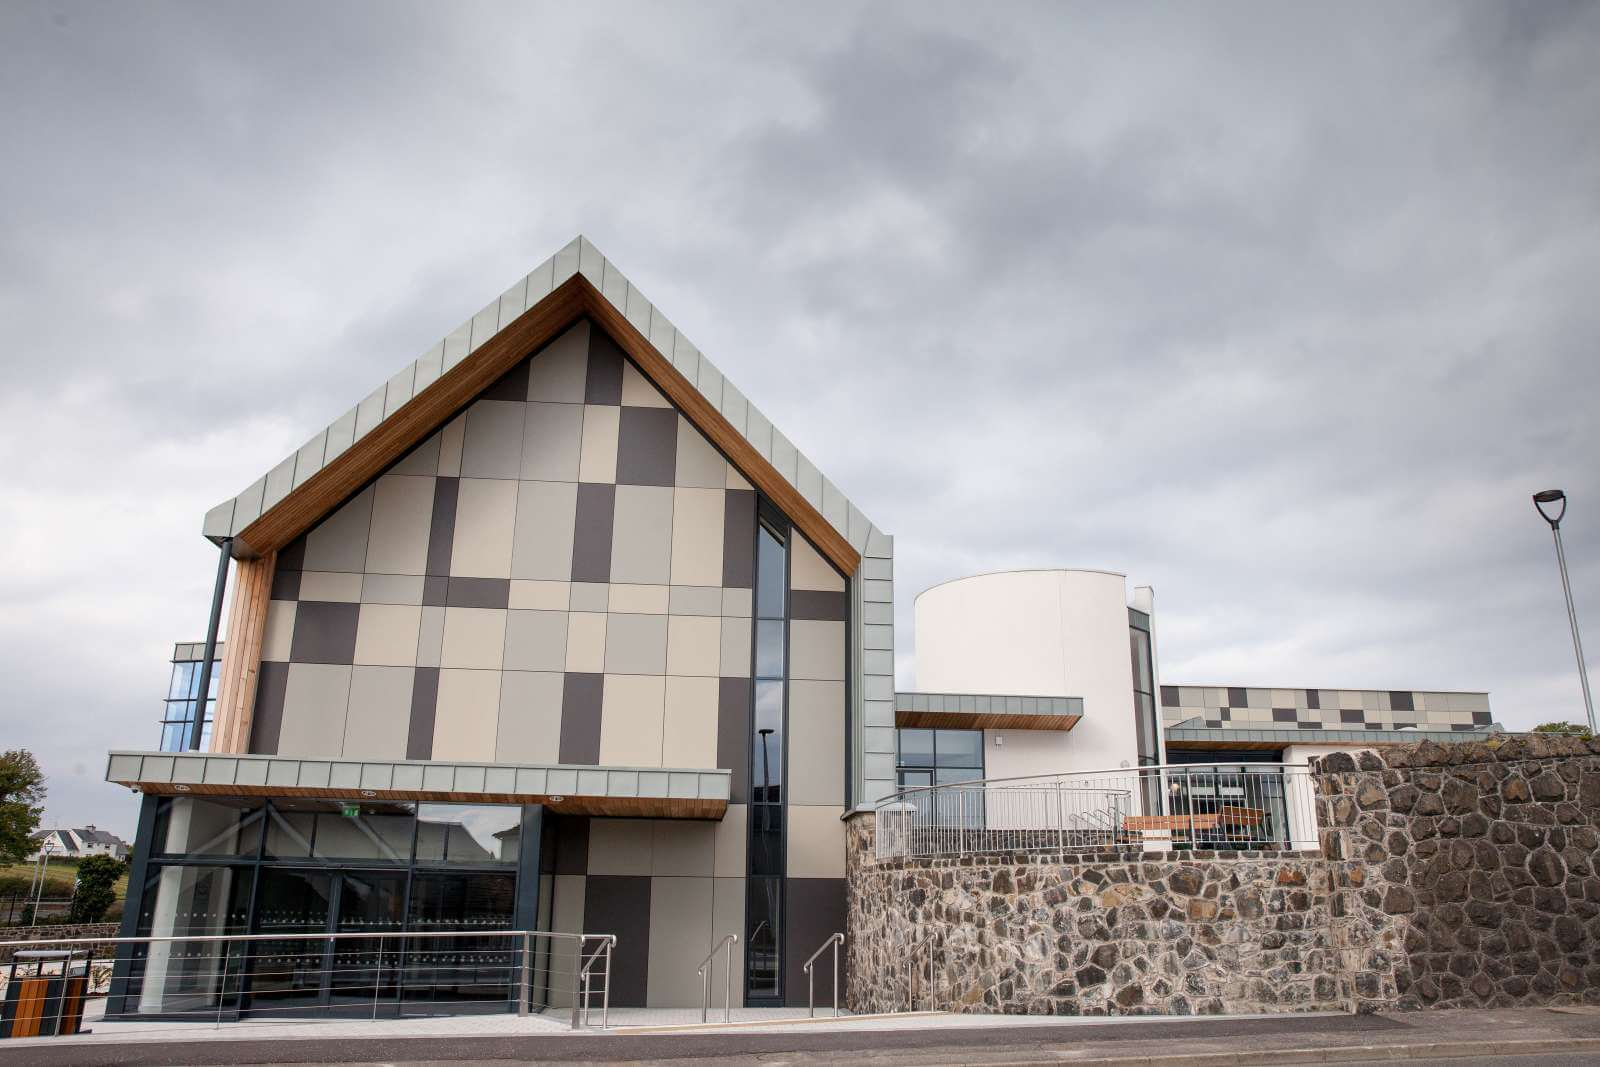 Seamus Heaney Home Place, is given a Swisspearl® Façade.